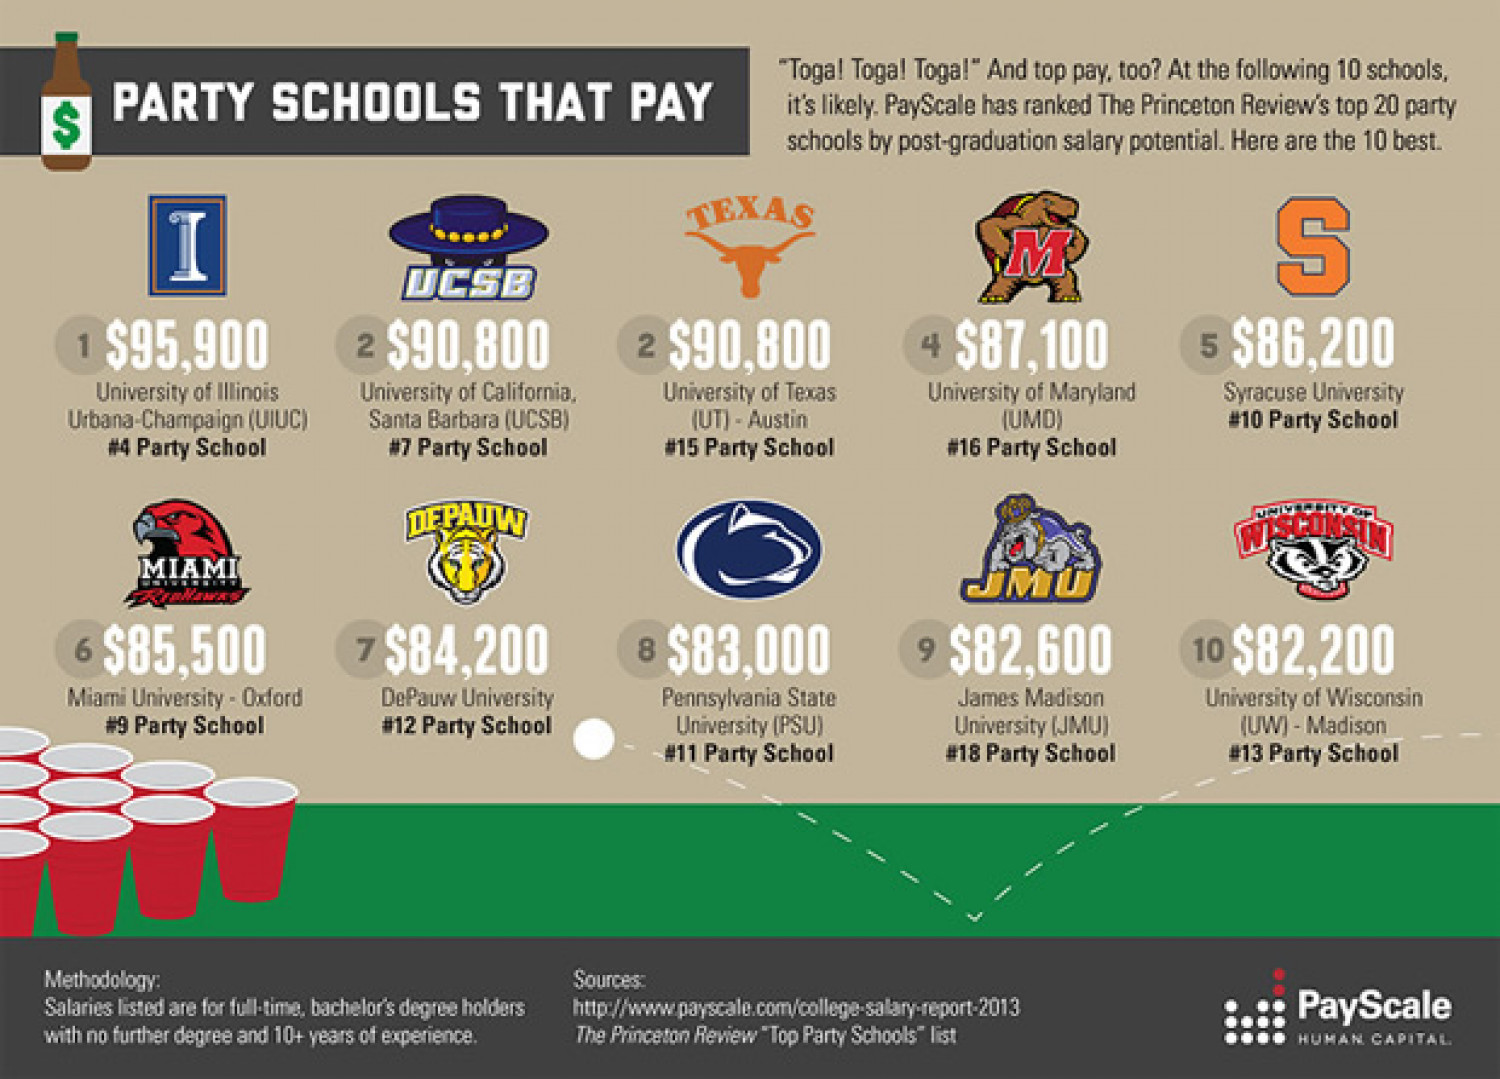 PayScale College Salary Report 2012-2013 - Party Schools That Pay Infographic